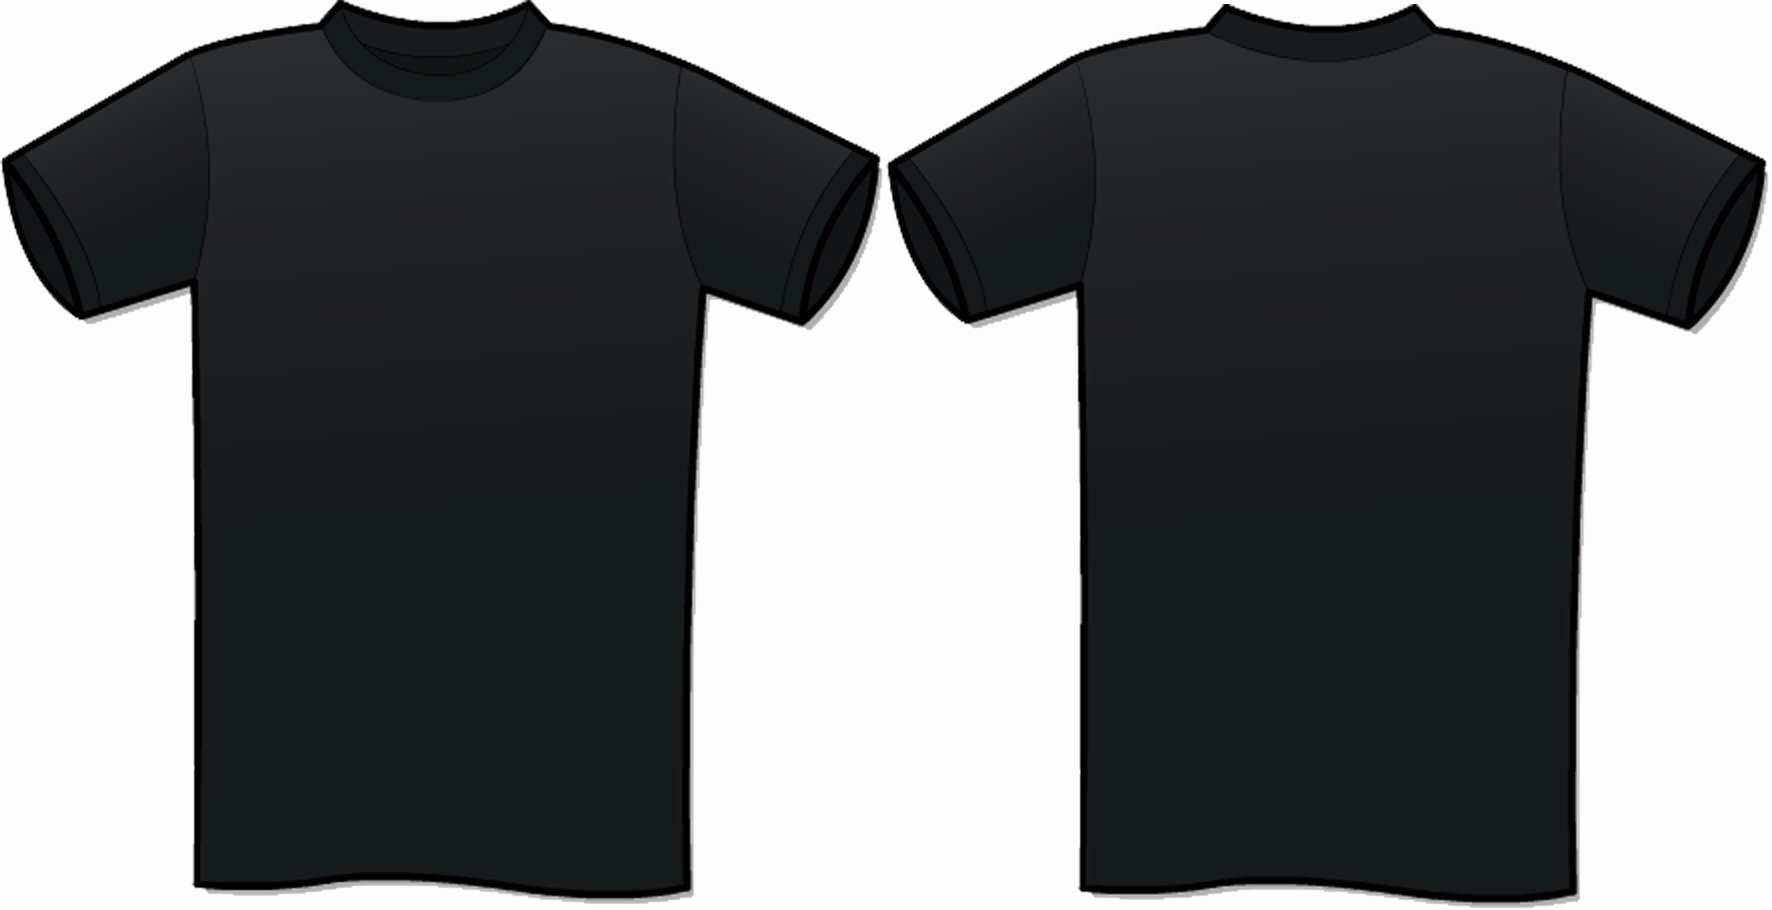 T Shirt Photoshop Template Awesome 15 T Shirt Design Template Psd White T Shirt